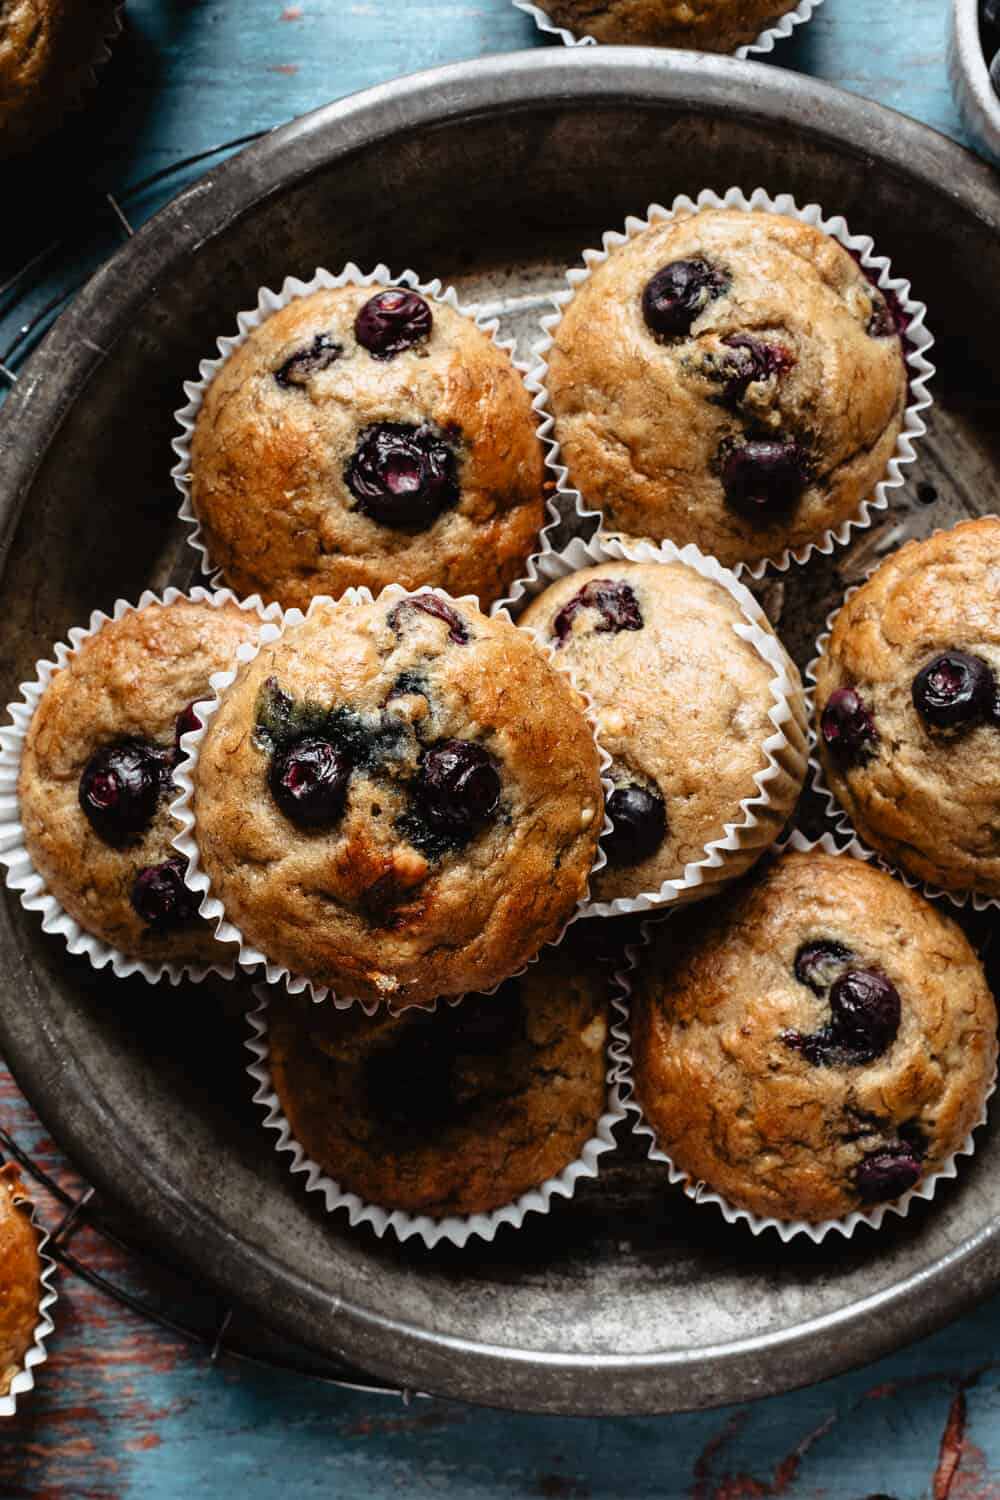 PALEO BLUEBERRY BANANA MUFFINS - INGREDIENTS4 medium bananas (or 3 large)3 organic pasture raised eggs1/4 cup almond flour1/2 cup coconut flour1/4 cup melted coconut oil1/2 cup nut butter of choice (I use almond butter)1 tsp baking powder1 tsp baking soda1 tsp cinnamon3/4 cup fresh blueberries, plus a few more to sprinkle on toppinch of sea salt